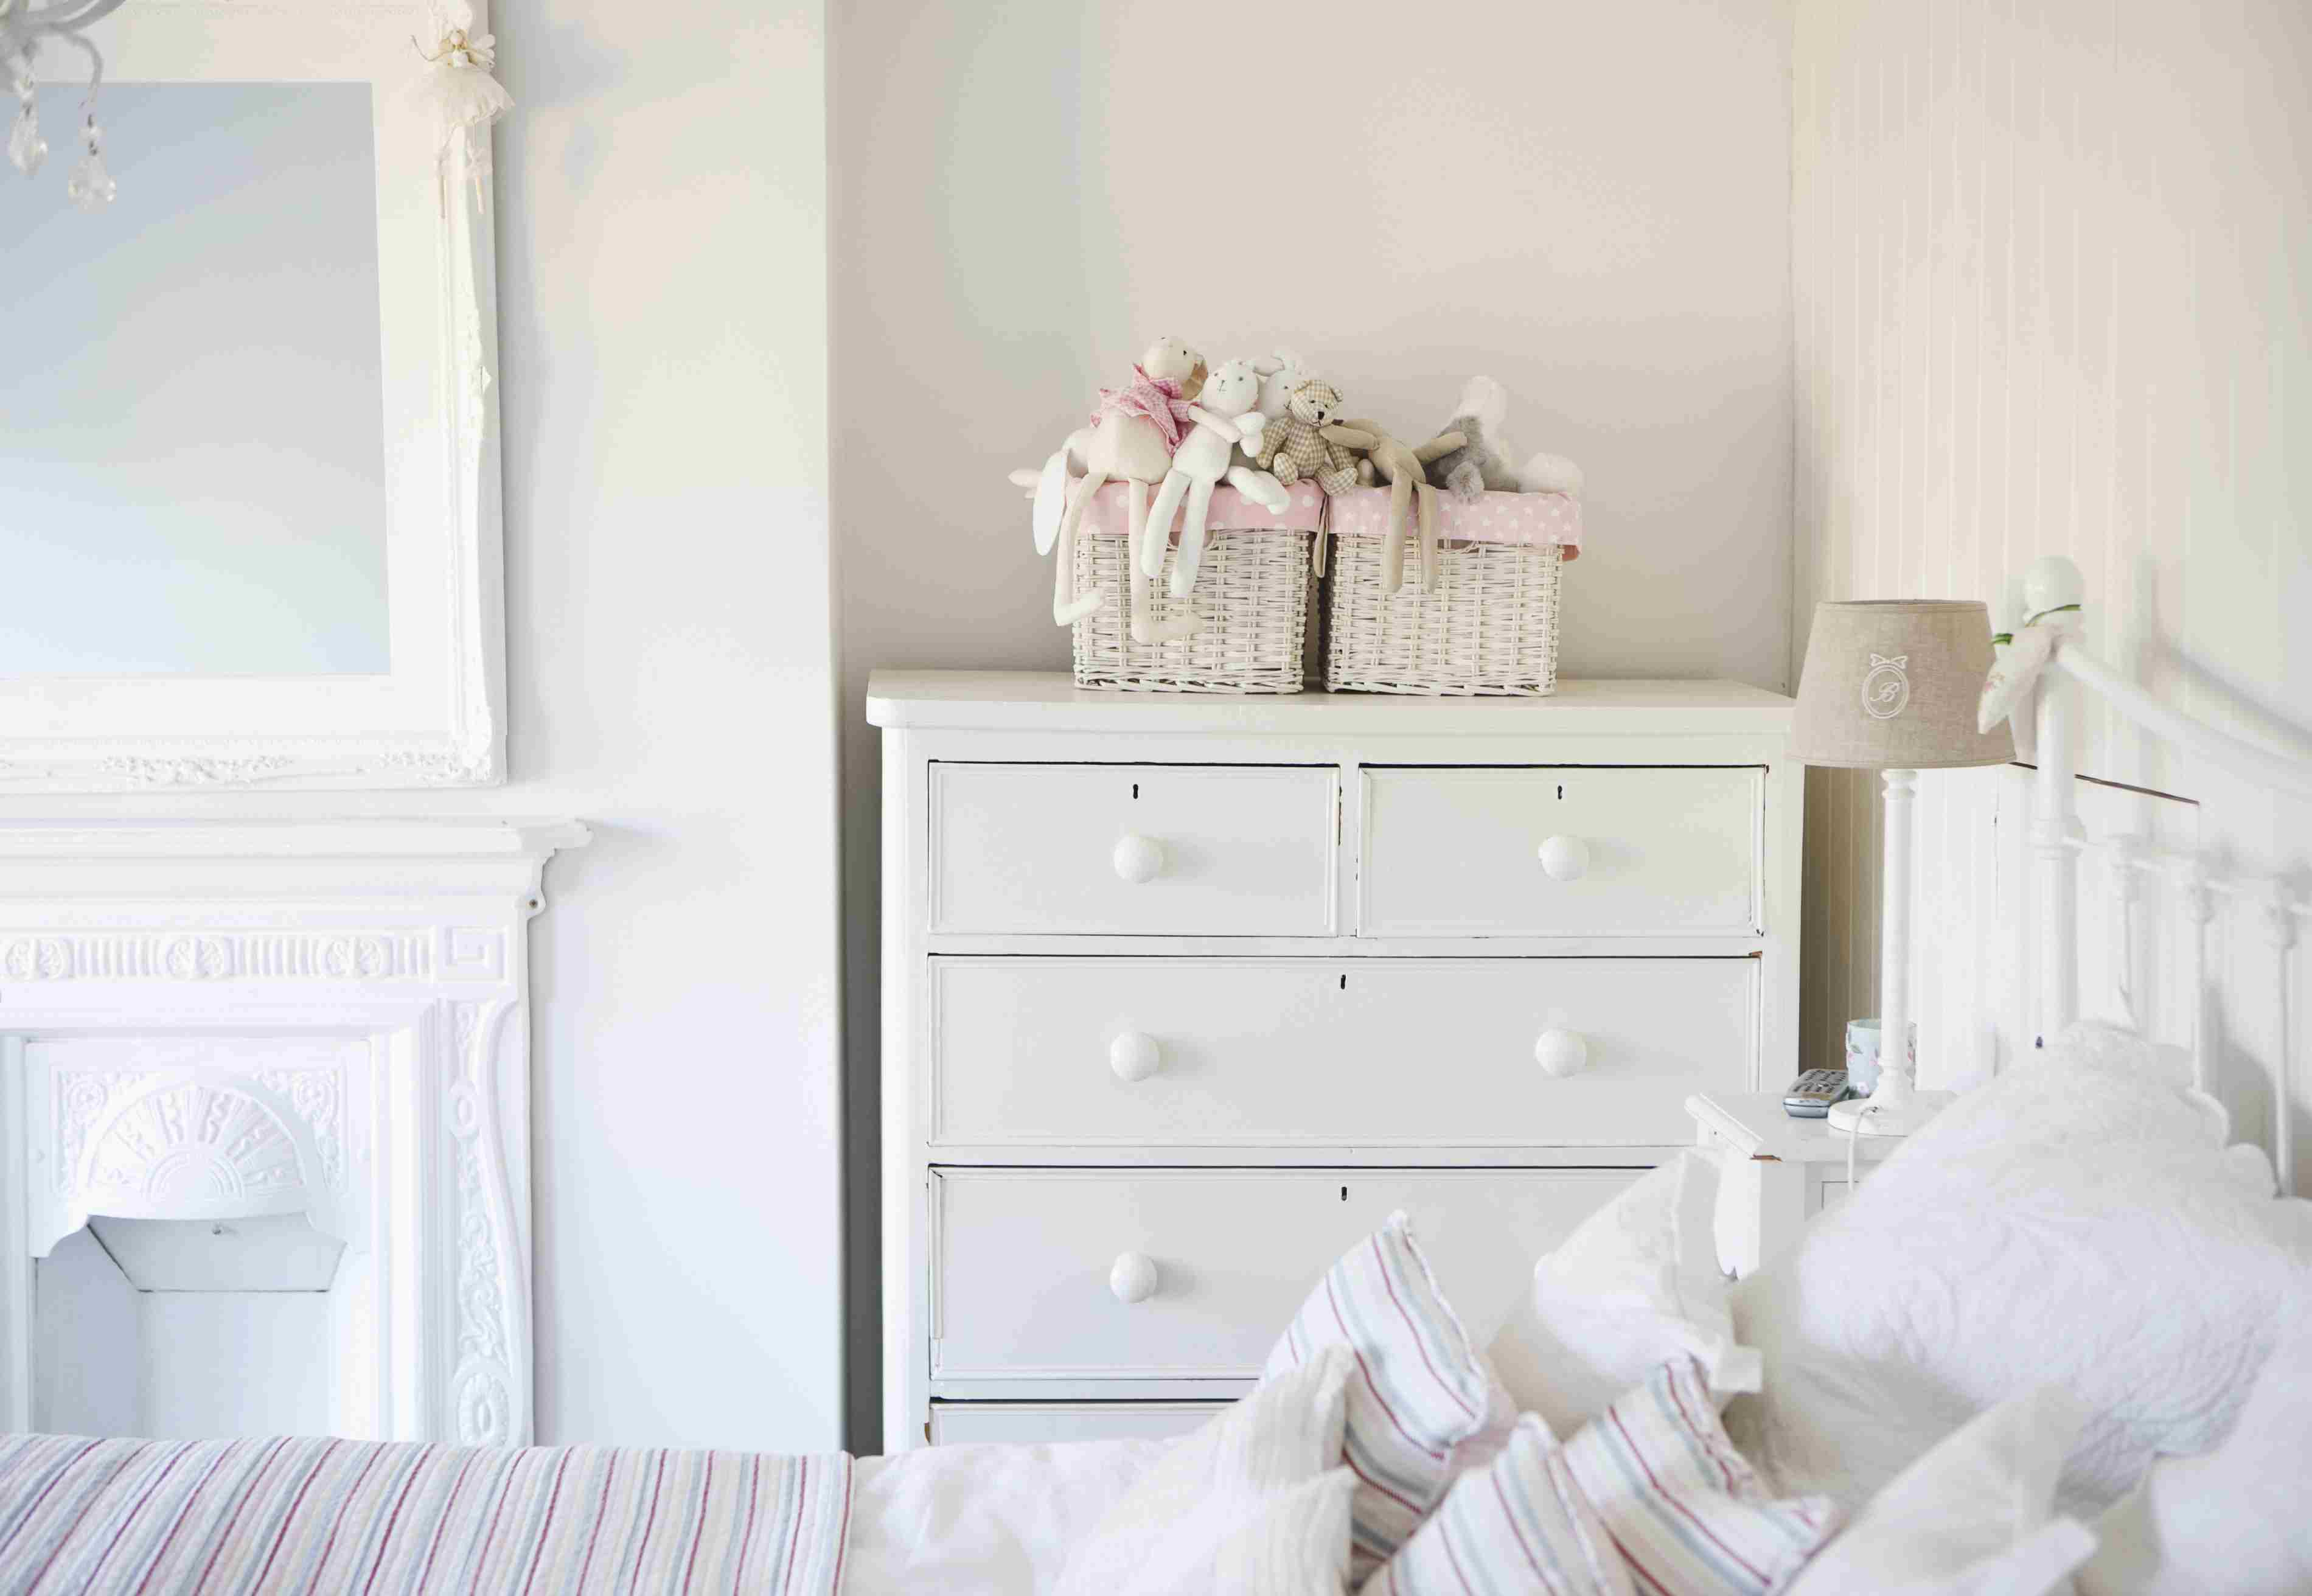 Shabby chic bedroom in white with dresser, bed, and mirror.